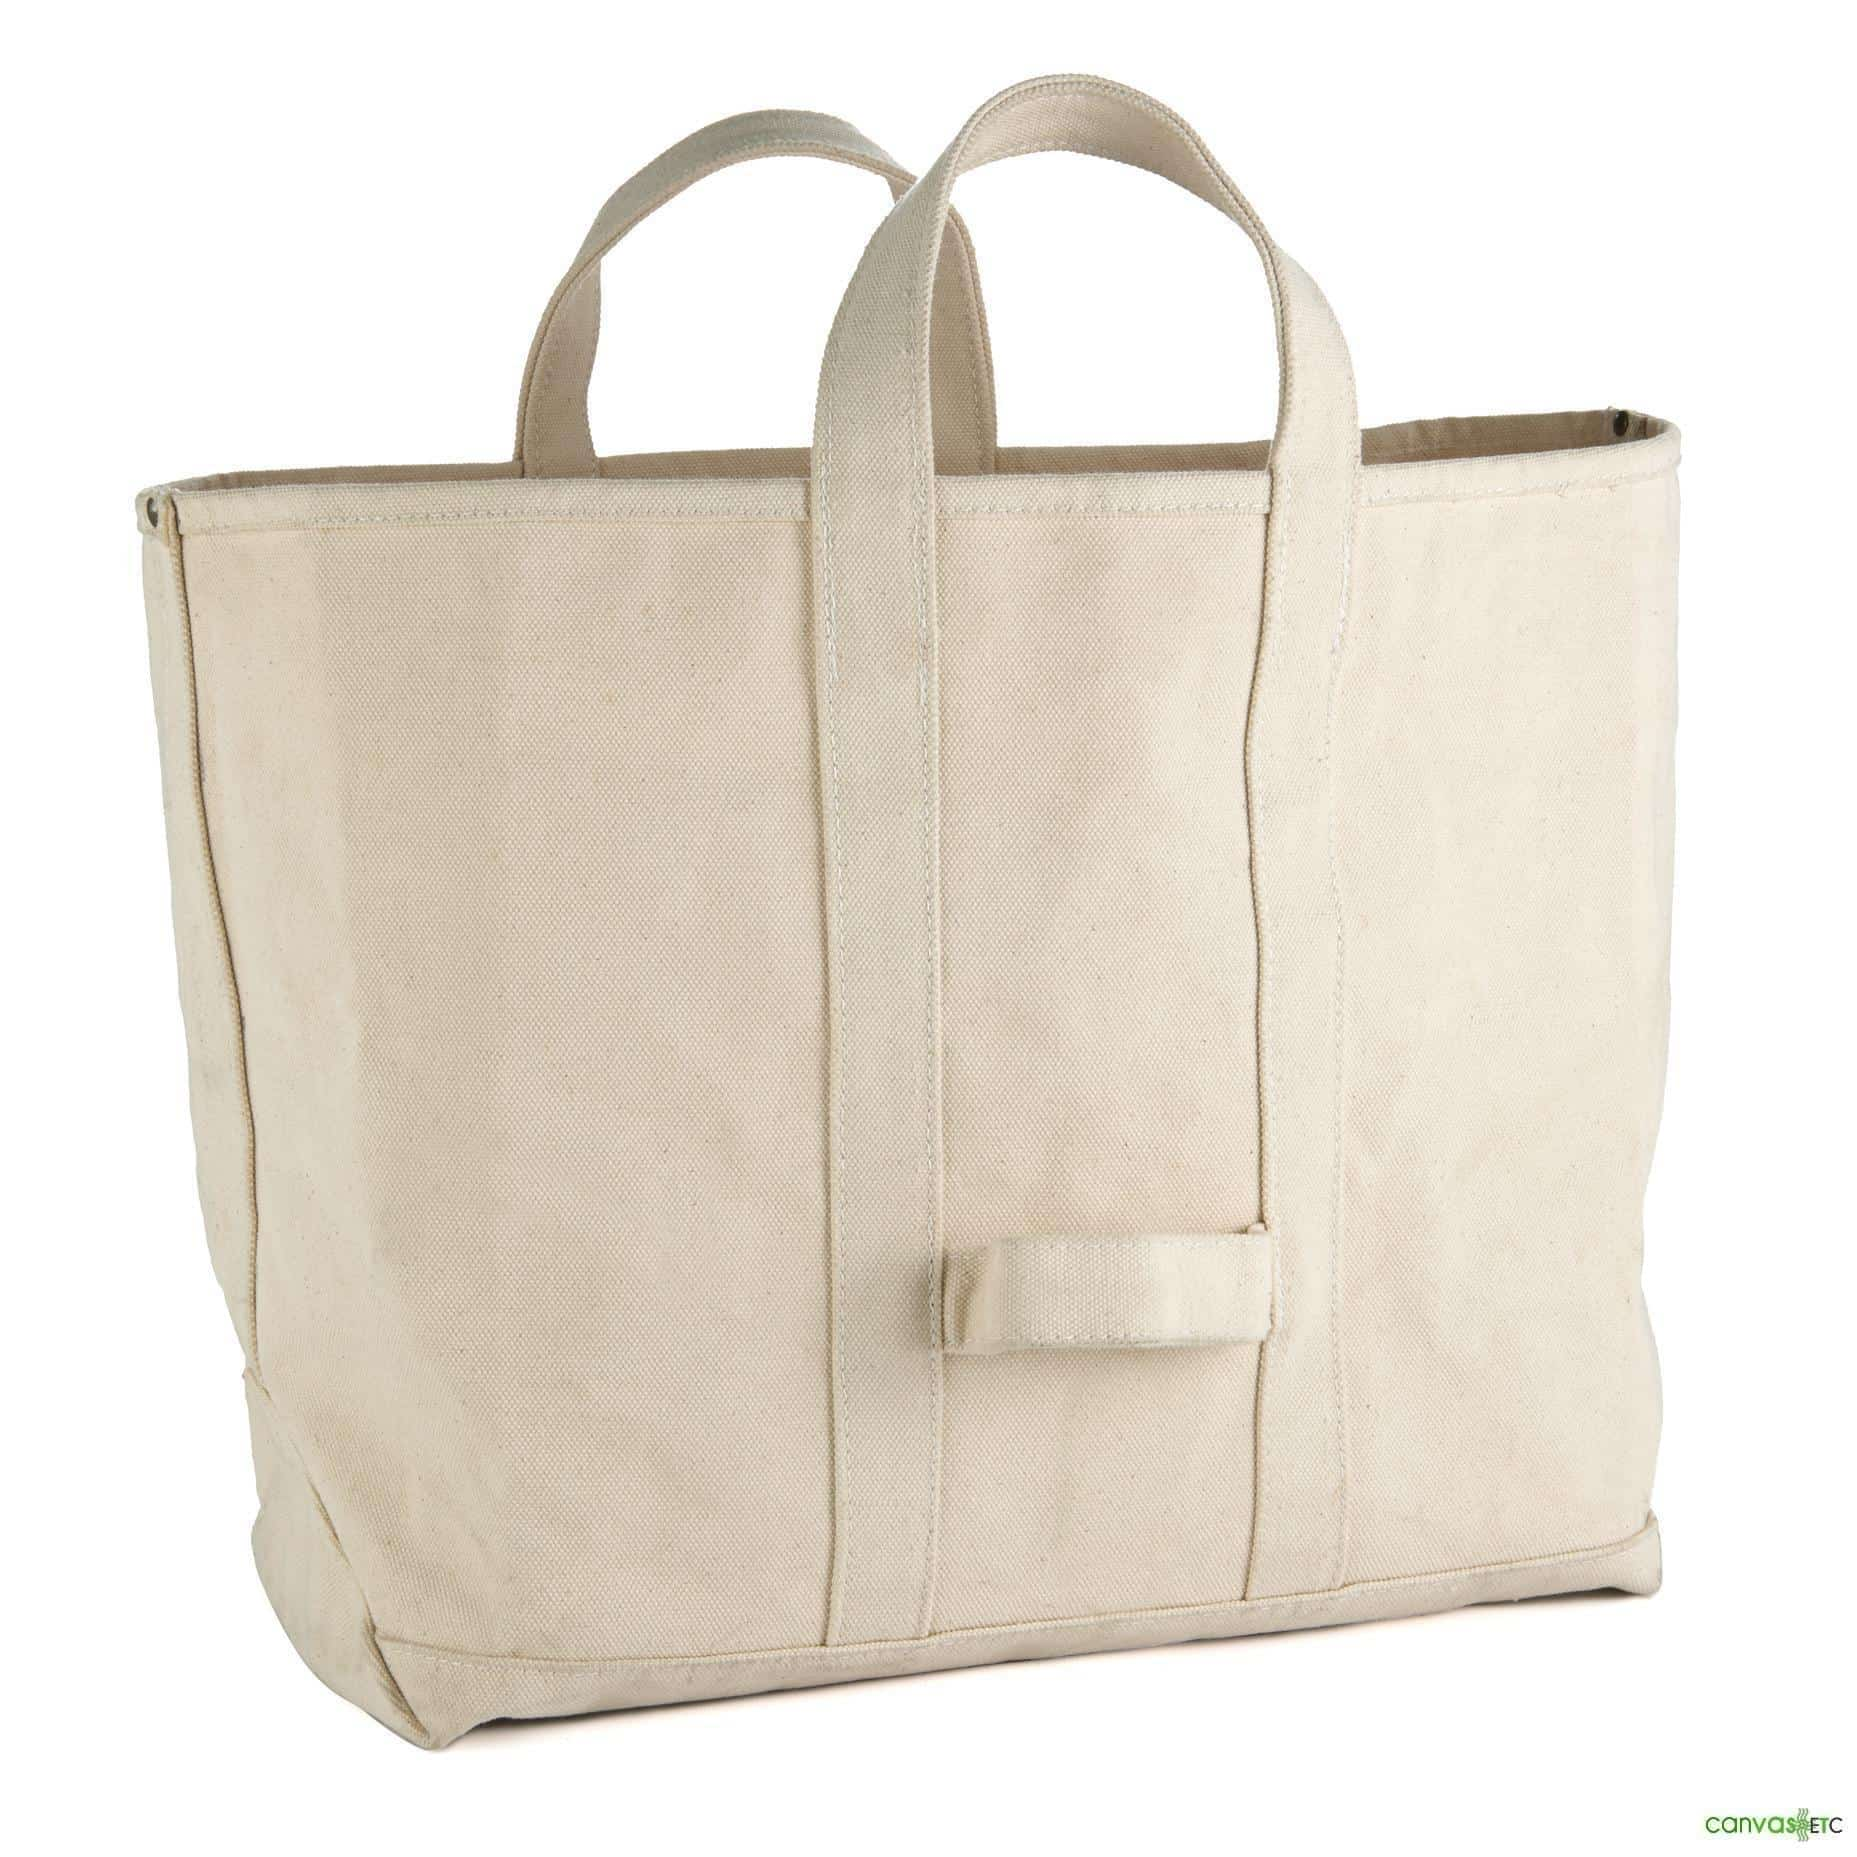 Heavy Duty Cotton Canvas Tote Bag